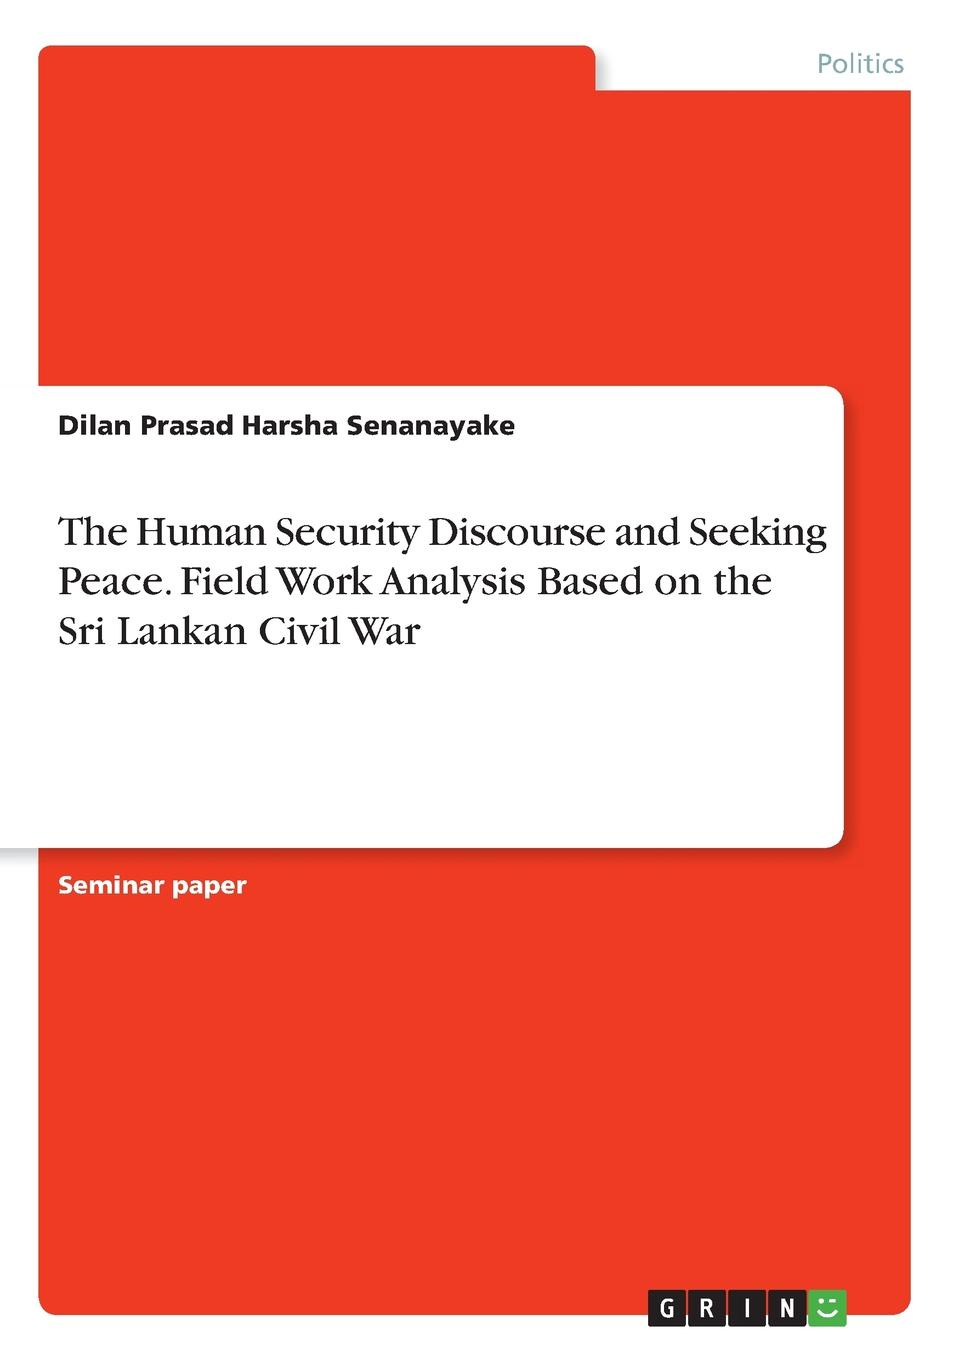 Dilan Prasad Harsha Senanayake The Human Security Discourse and Seeking Peace. Field Work Analysis Based on the Sri Lankan Civil War conway william martin the crowd in peace and war